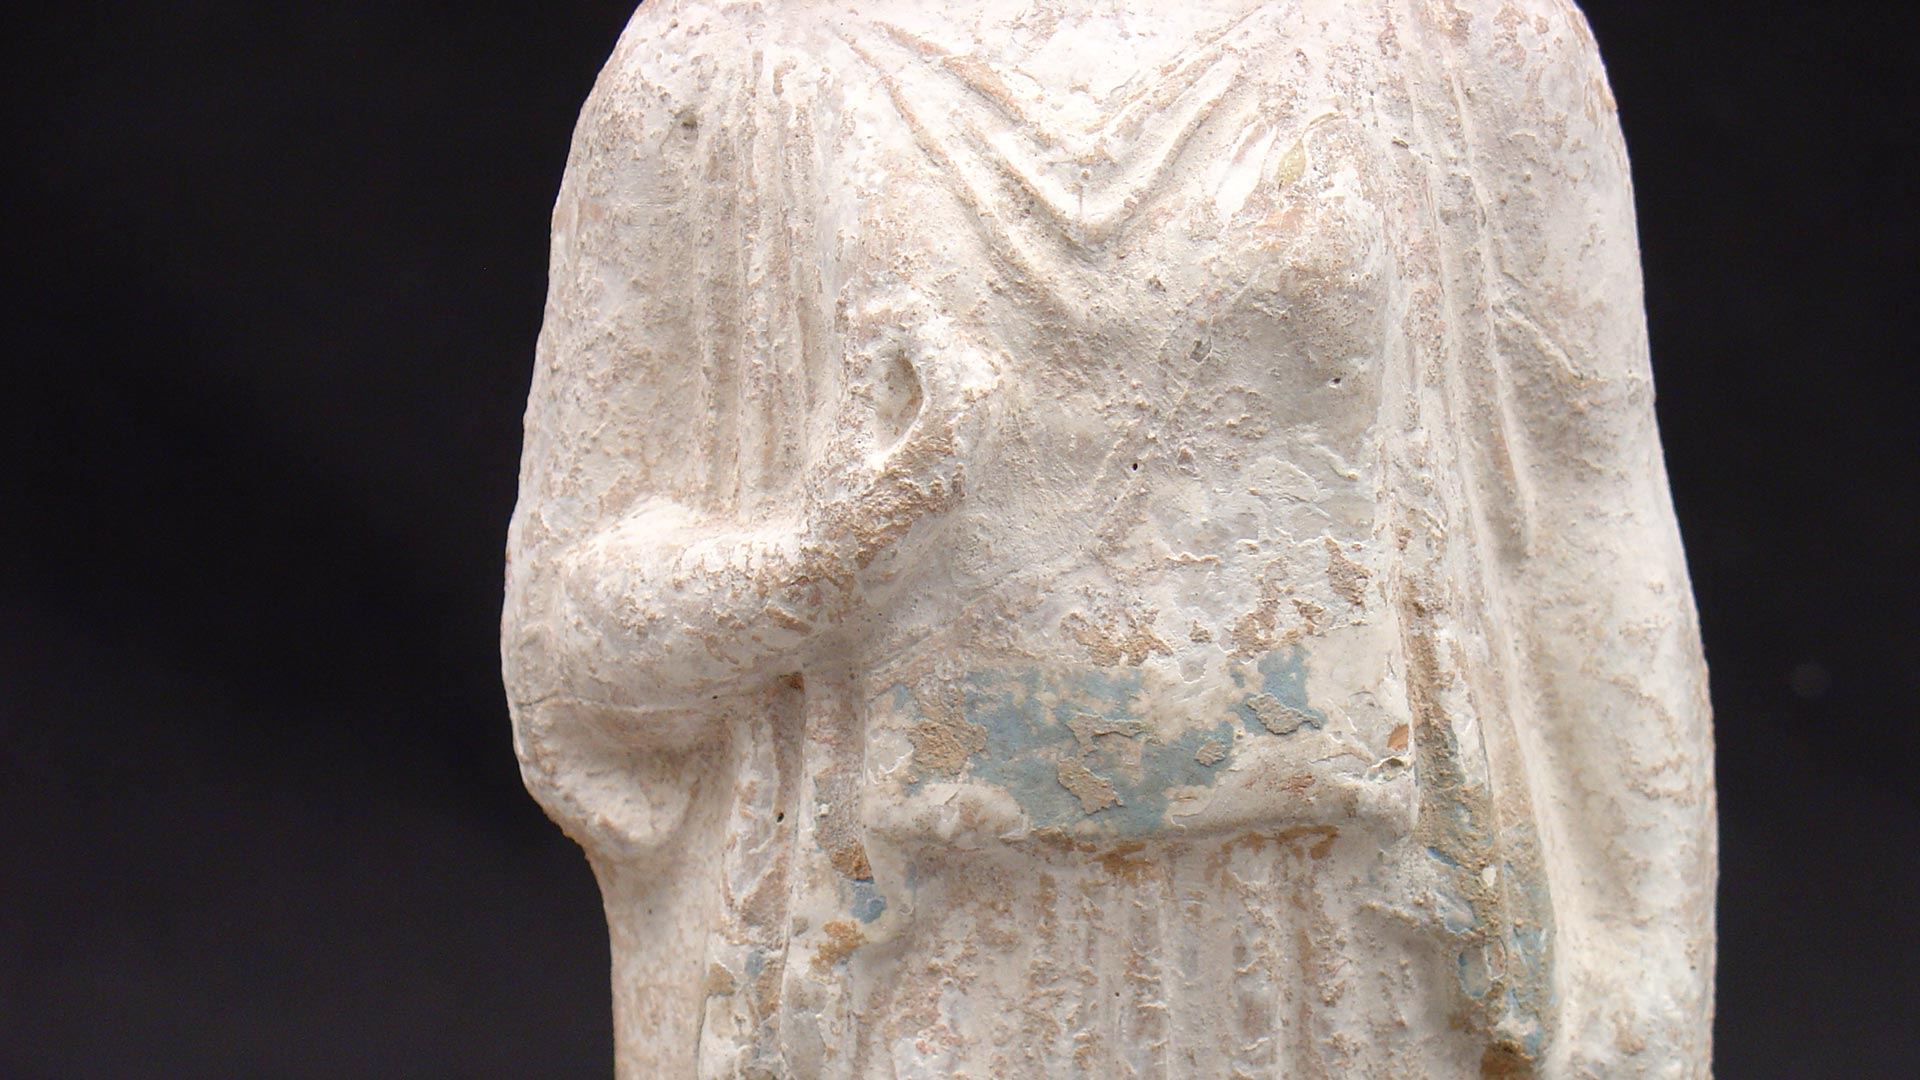 closeup of traces of blue pigment on the torso of the figurine